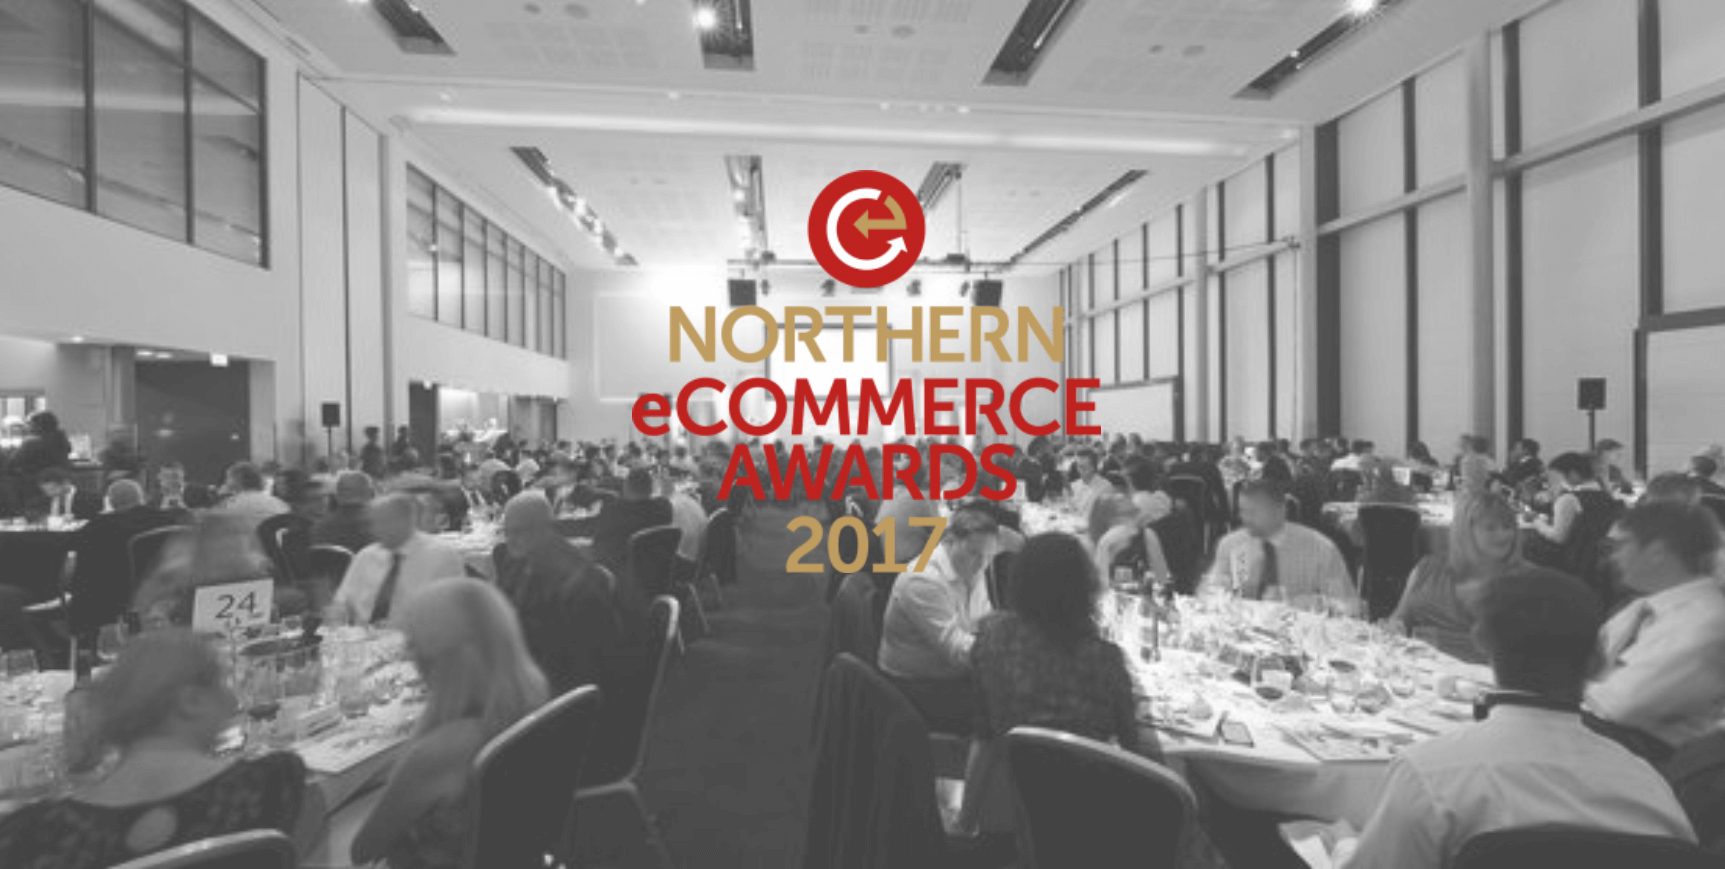 We've Been Shortlisted in the Northern eCommerce Awards 2017!